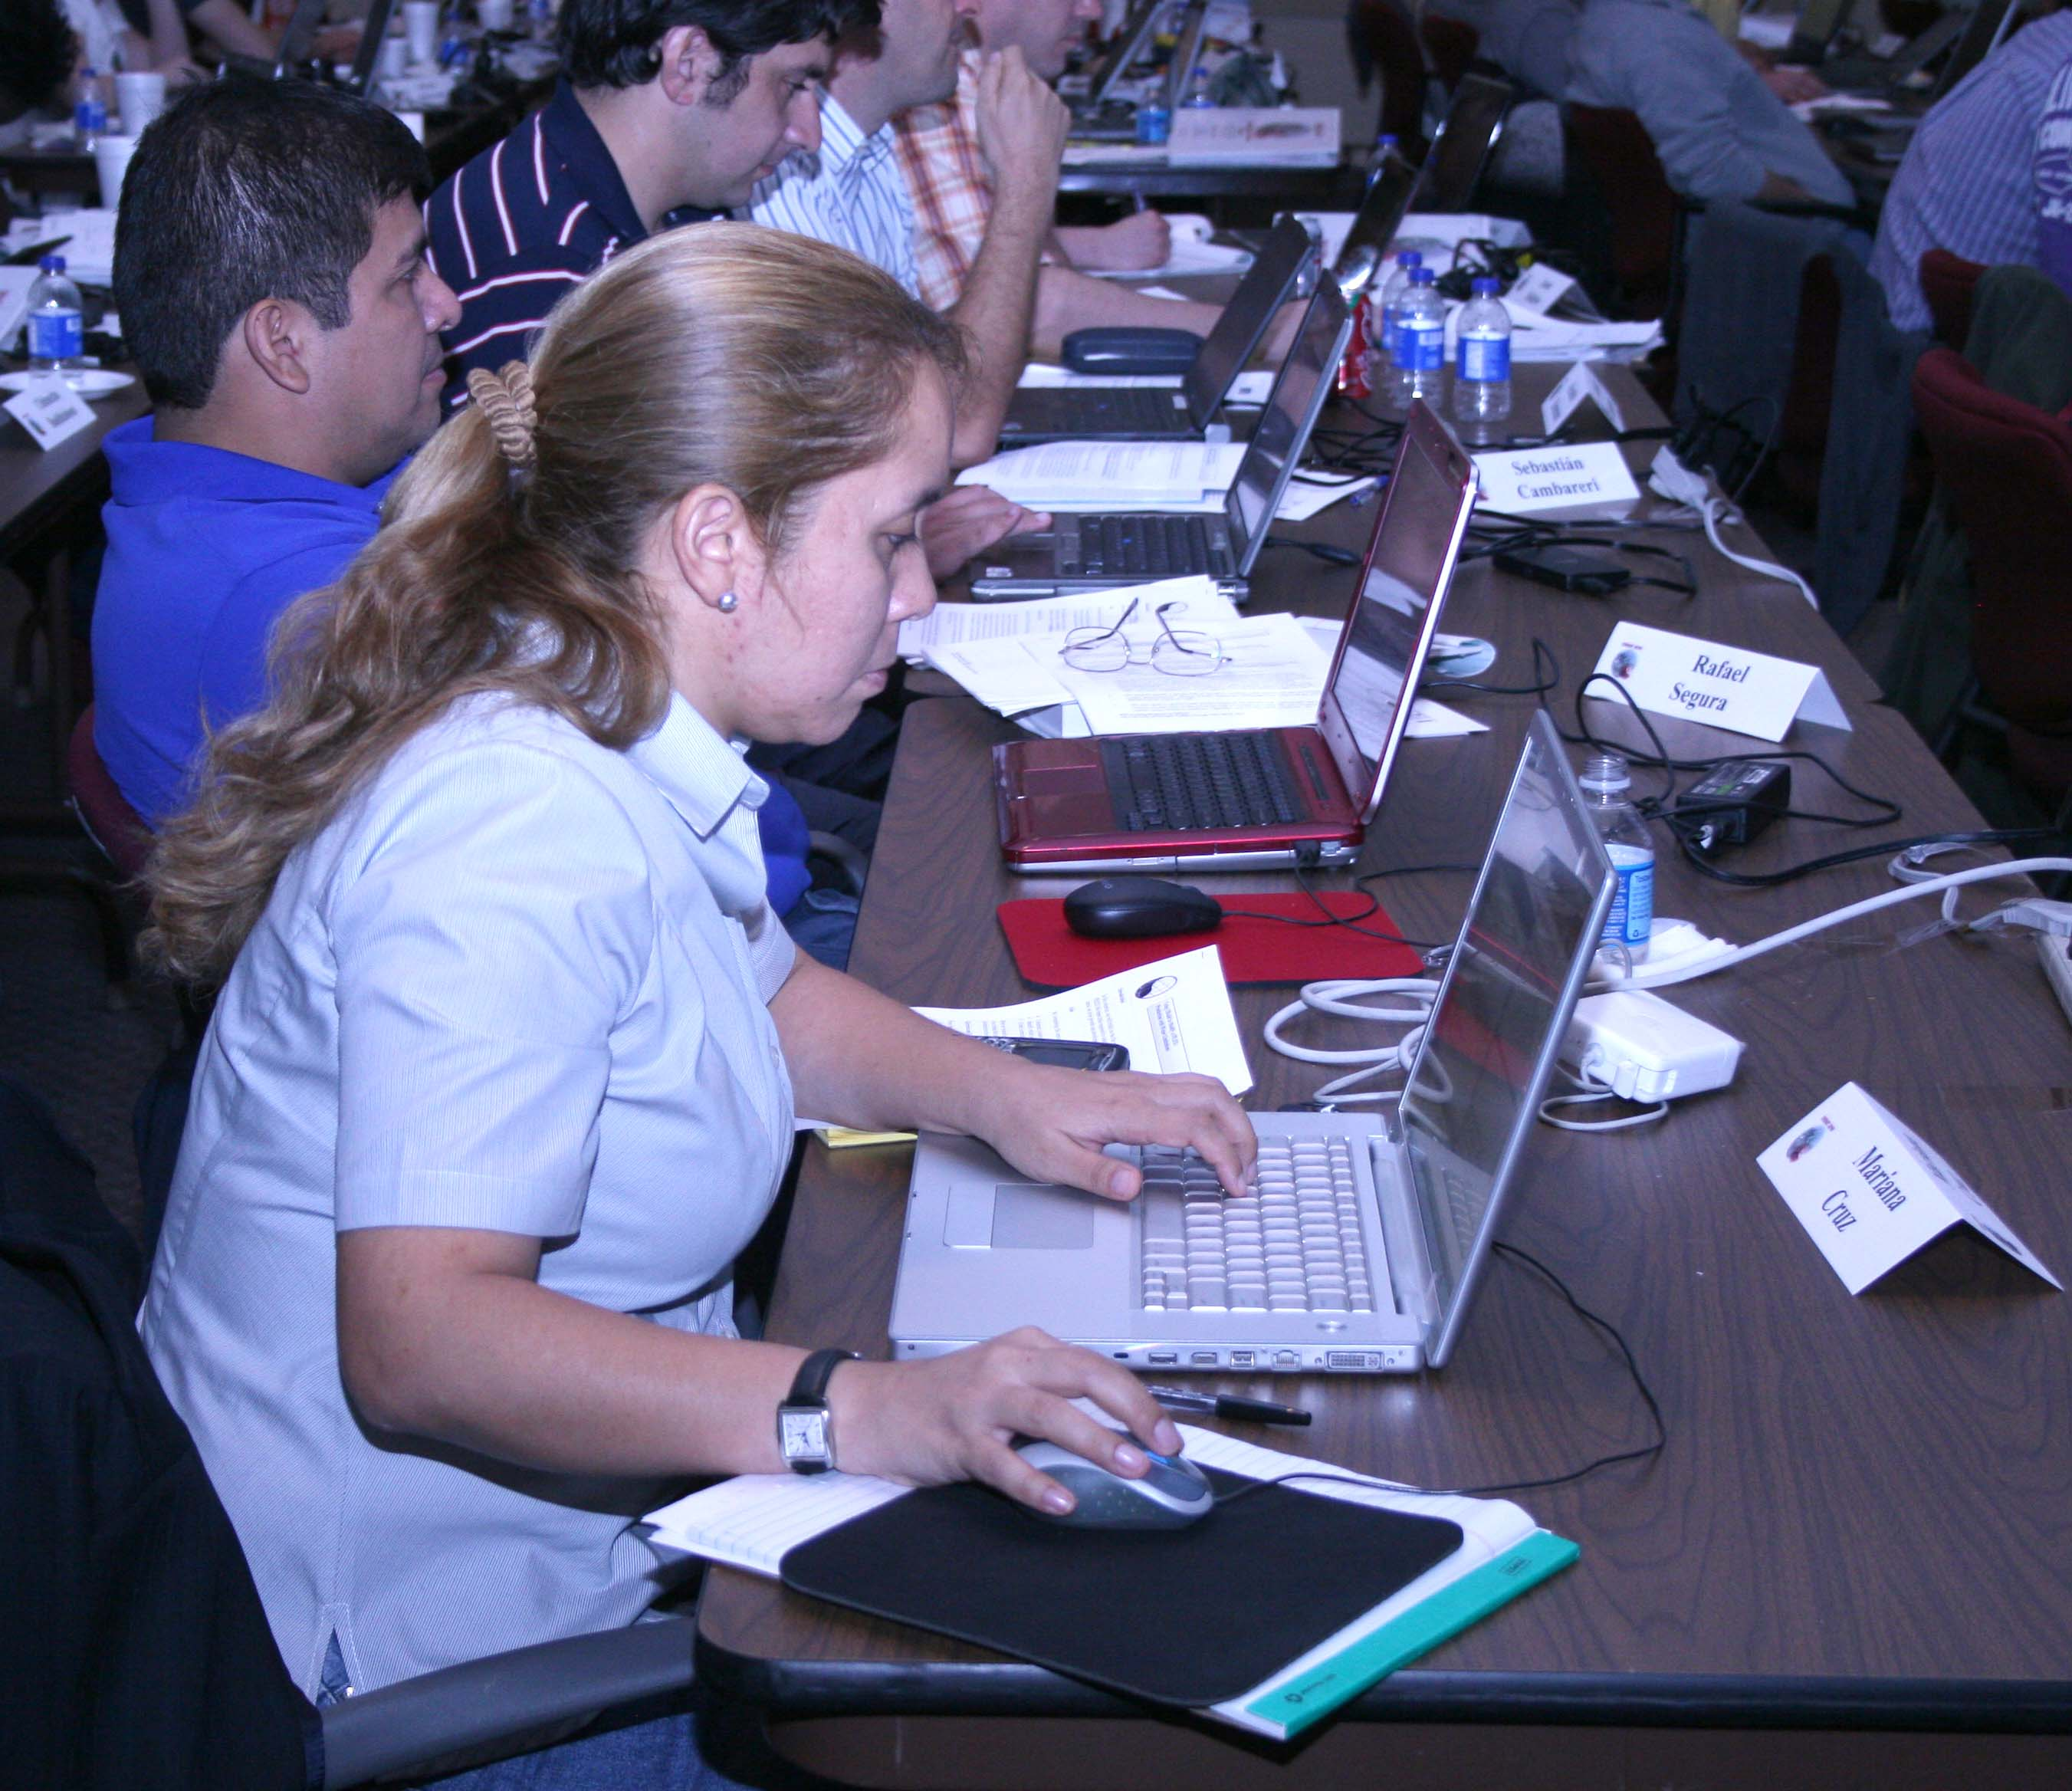 Mariana Cruz of the International Potato Center in Lima, Peru, is shown participating in the DSSAT training workshop held this month. She was one of more than 75 international visitors who travelled to the UGA Griffin Campus for the training.